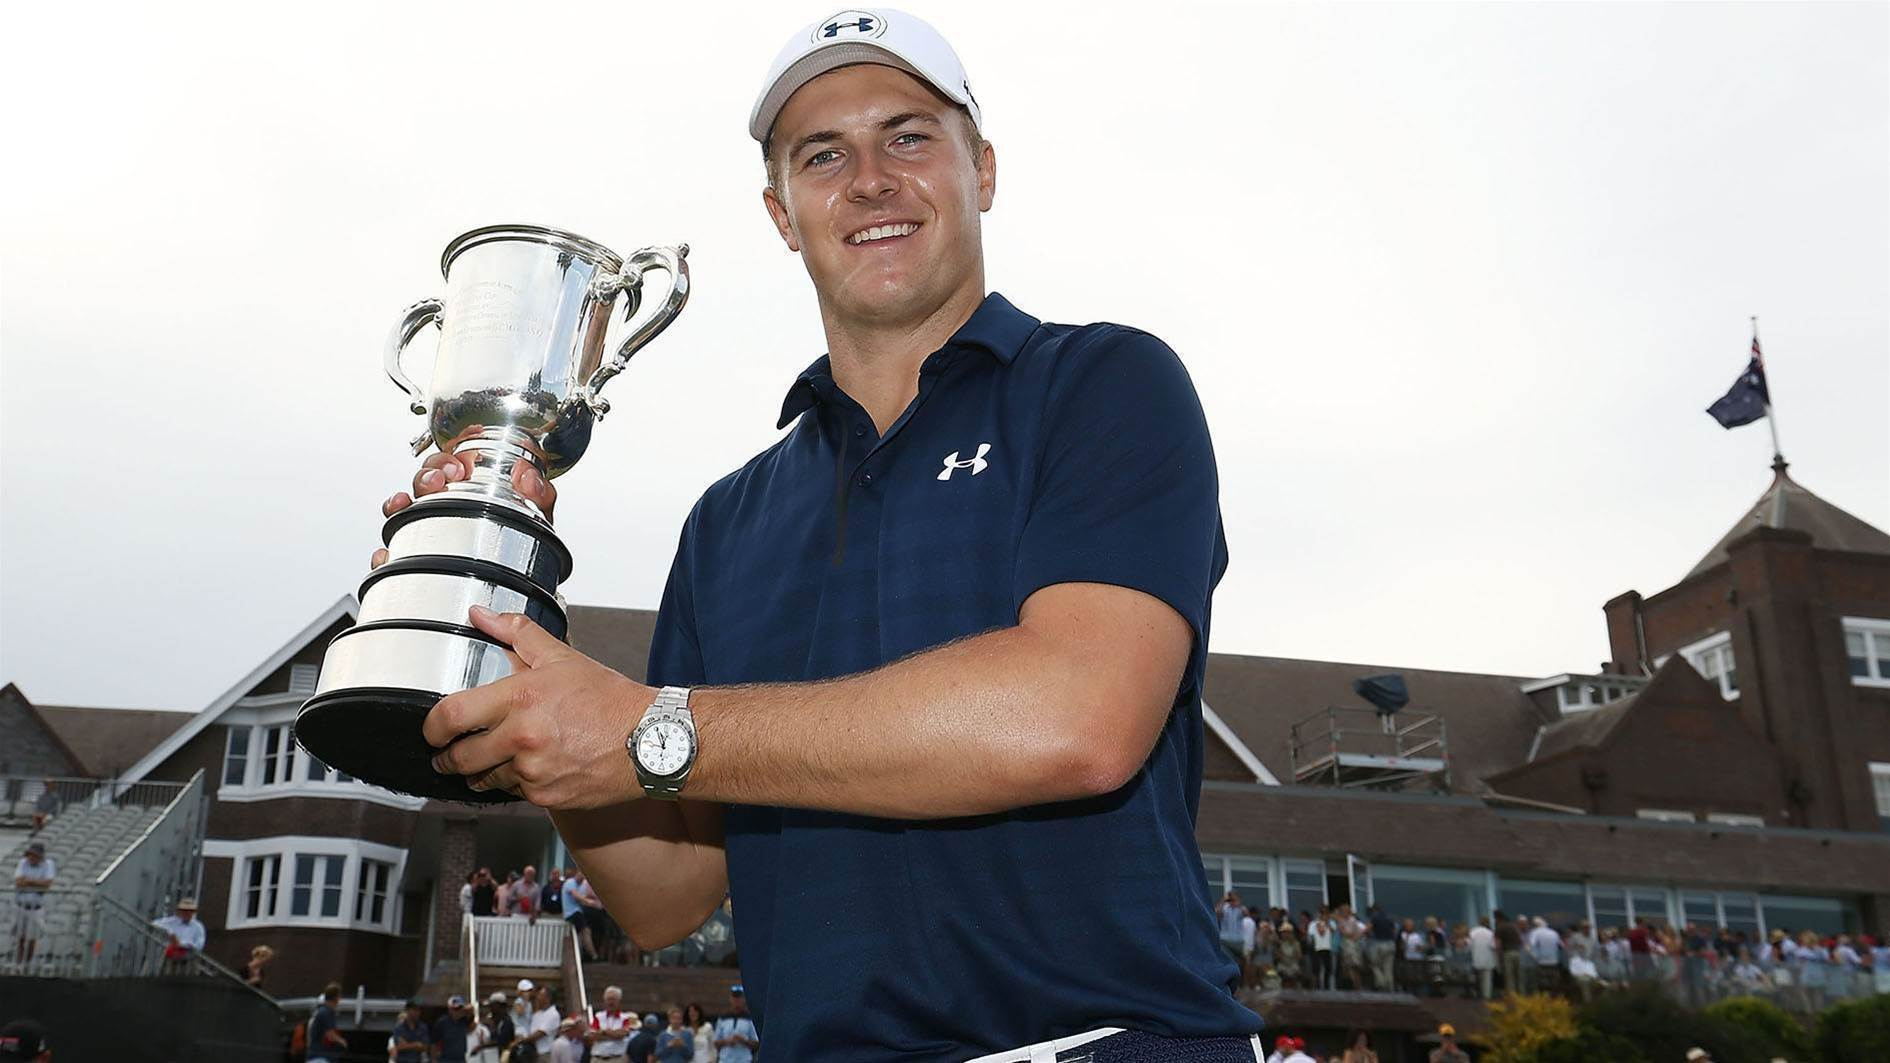 Spieth set to defend Australian Open